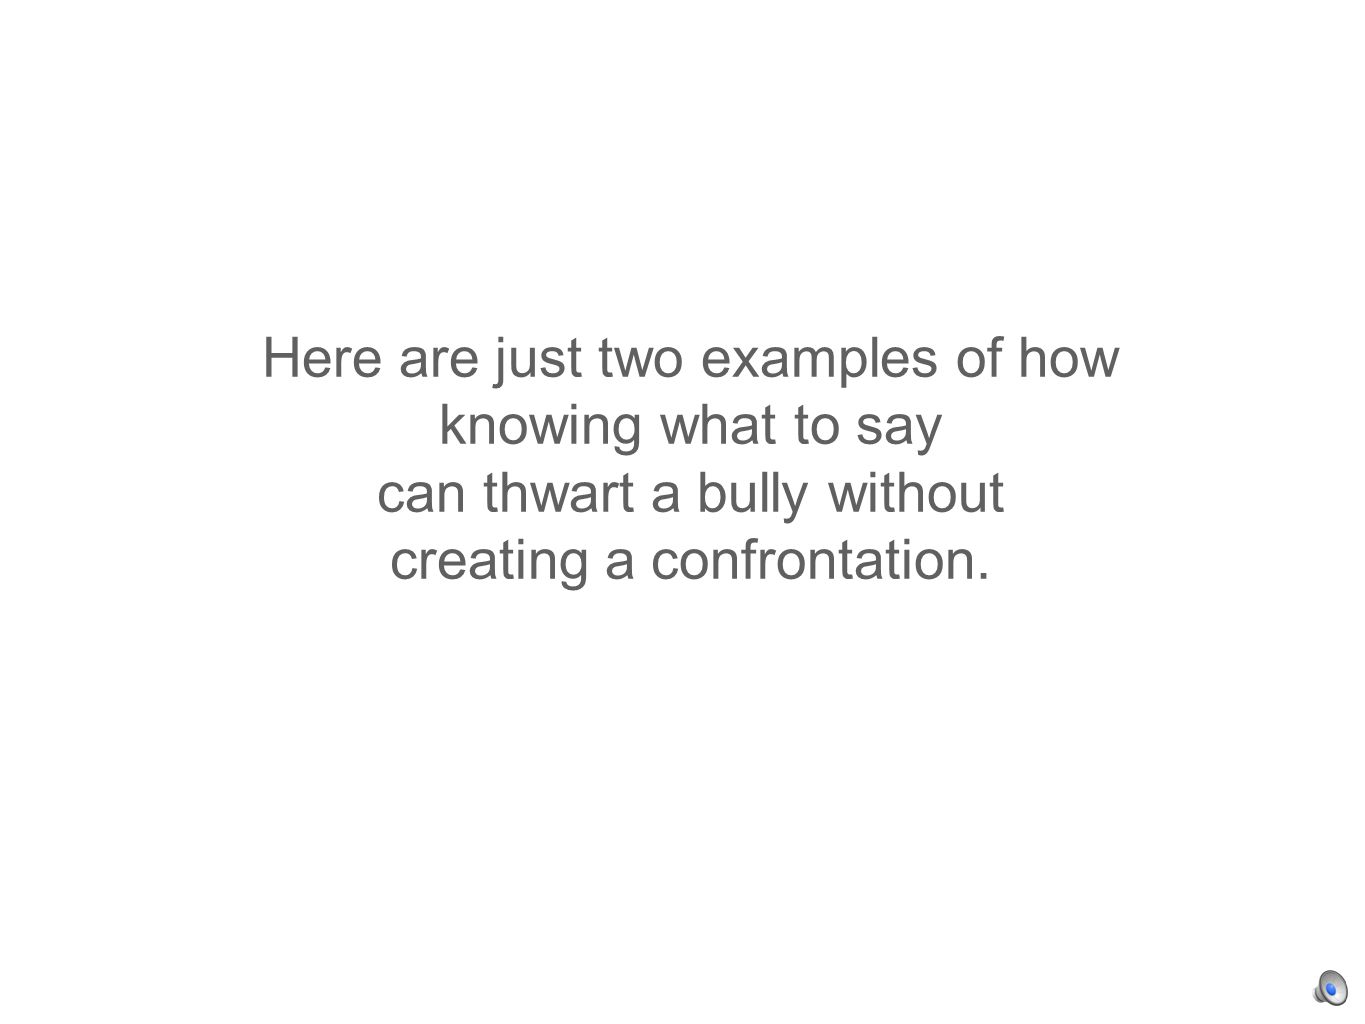 Here are just two examples of how knowing what to say can thwart a bully without creating a confrontation.